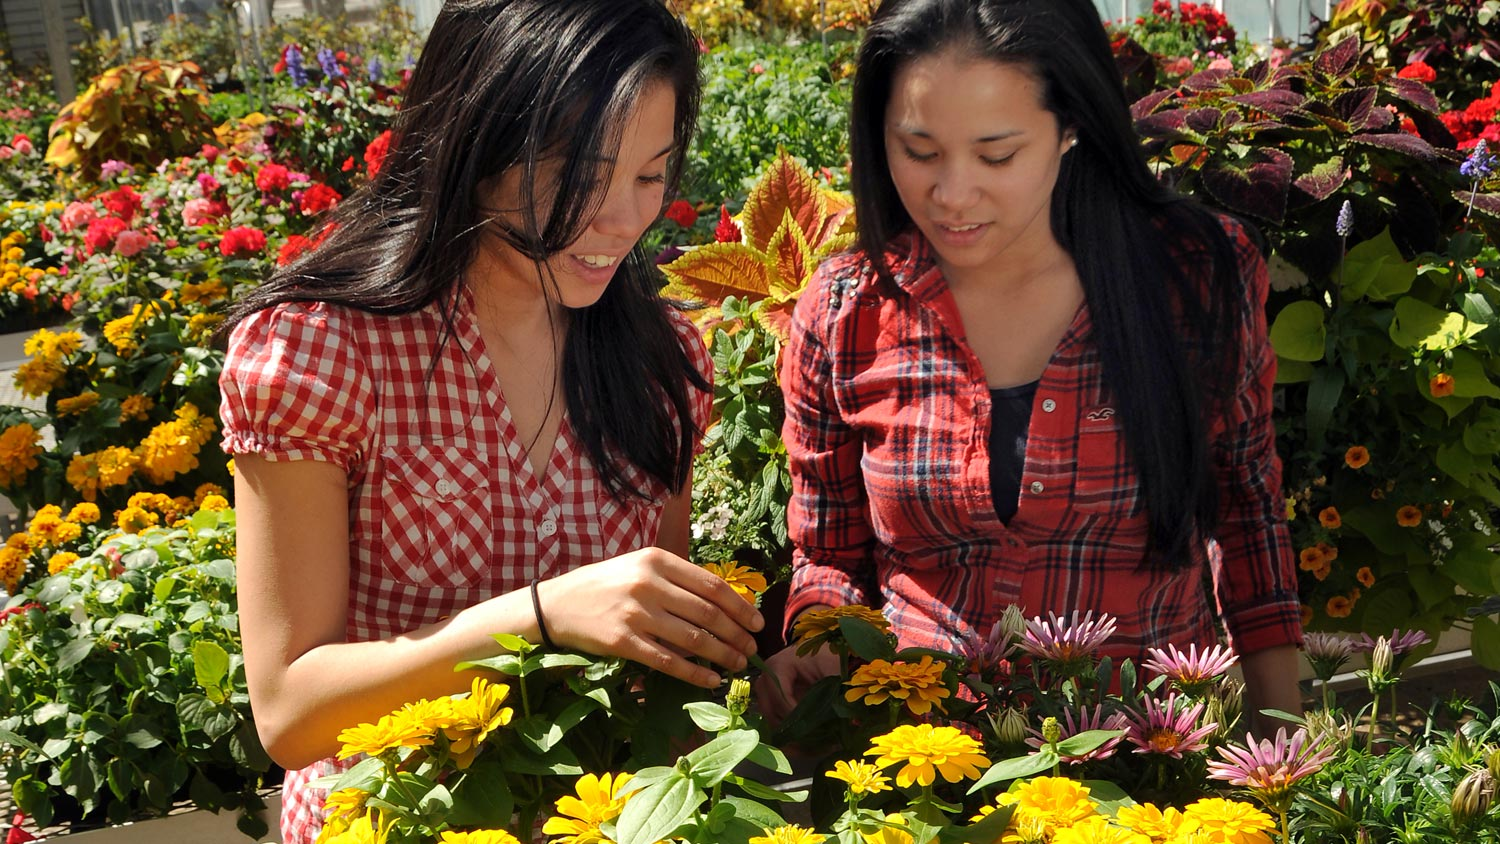 Students examine flowers in greenhouse